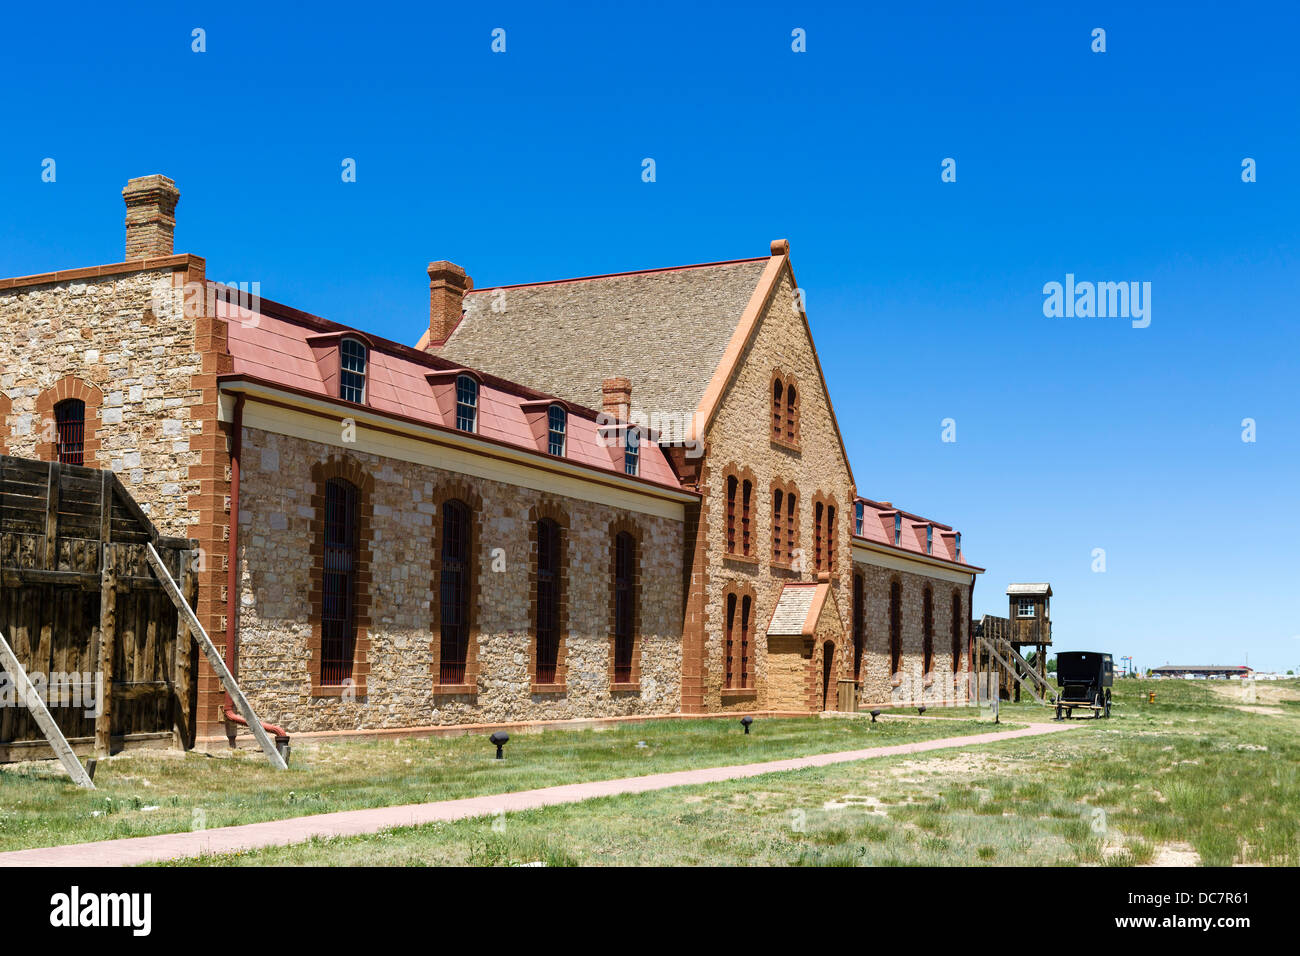 Wyoming Territorial Prison Museum, where the outlaw Butch Cassidy was once imprisoned, Laramie, Wyoming, USA - Stock Image